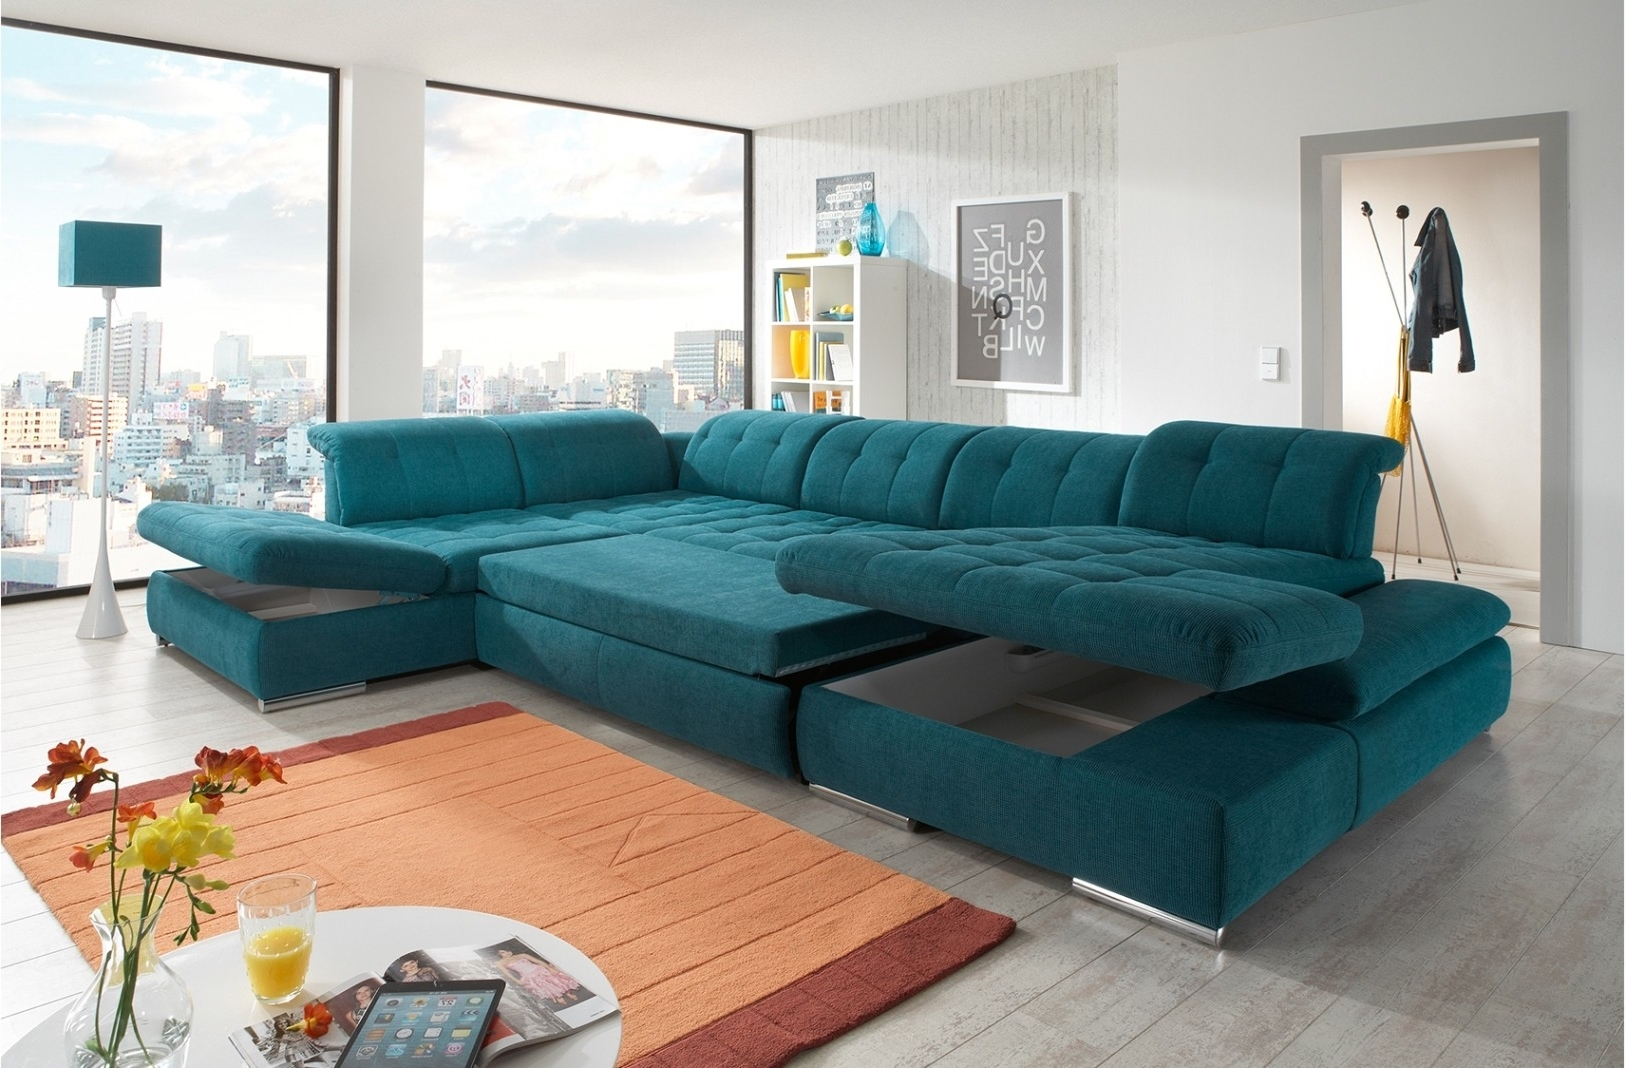 Trinidad And Tobago Sectional Sofas With Most Up To Date Alpine Sectional Sofa In Green Fabric (View 14 of 20)